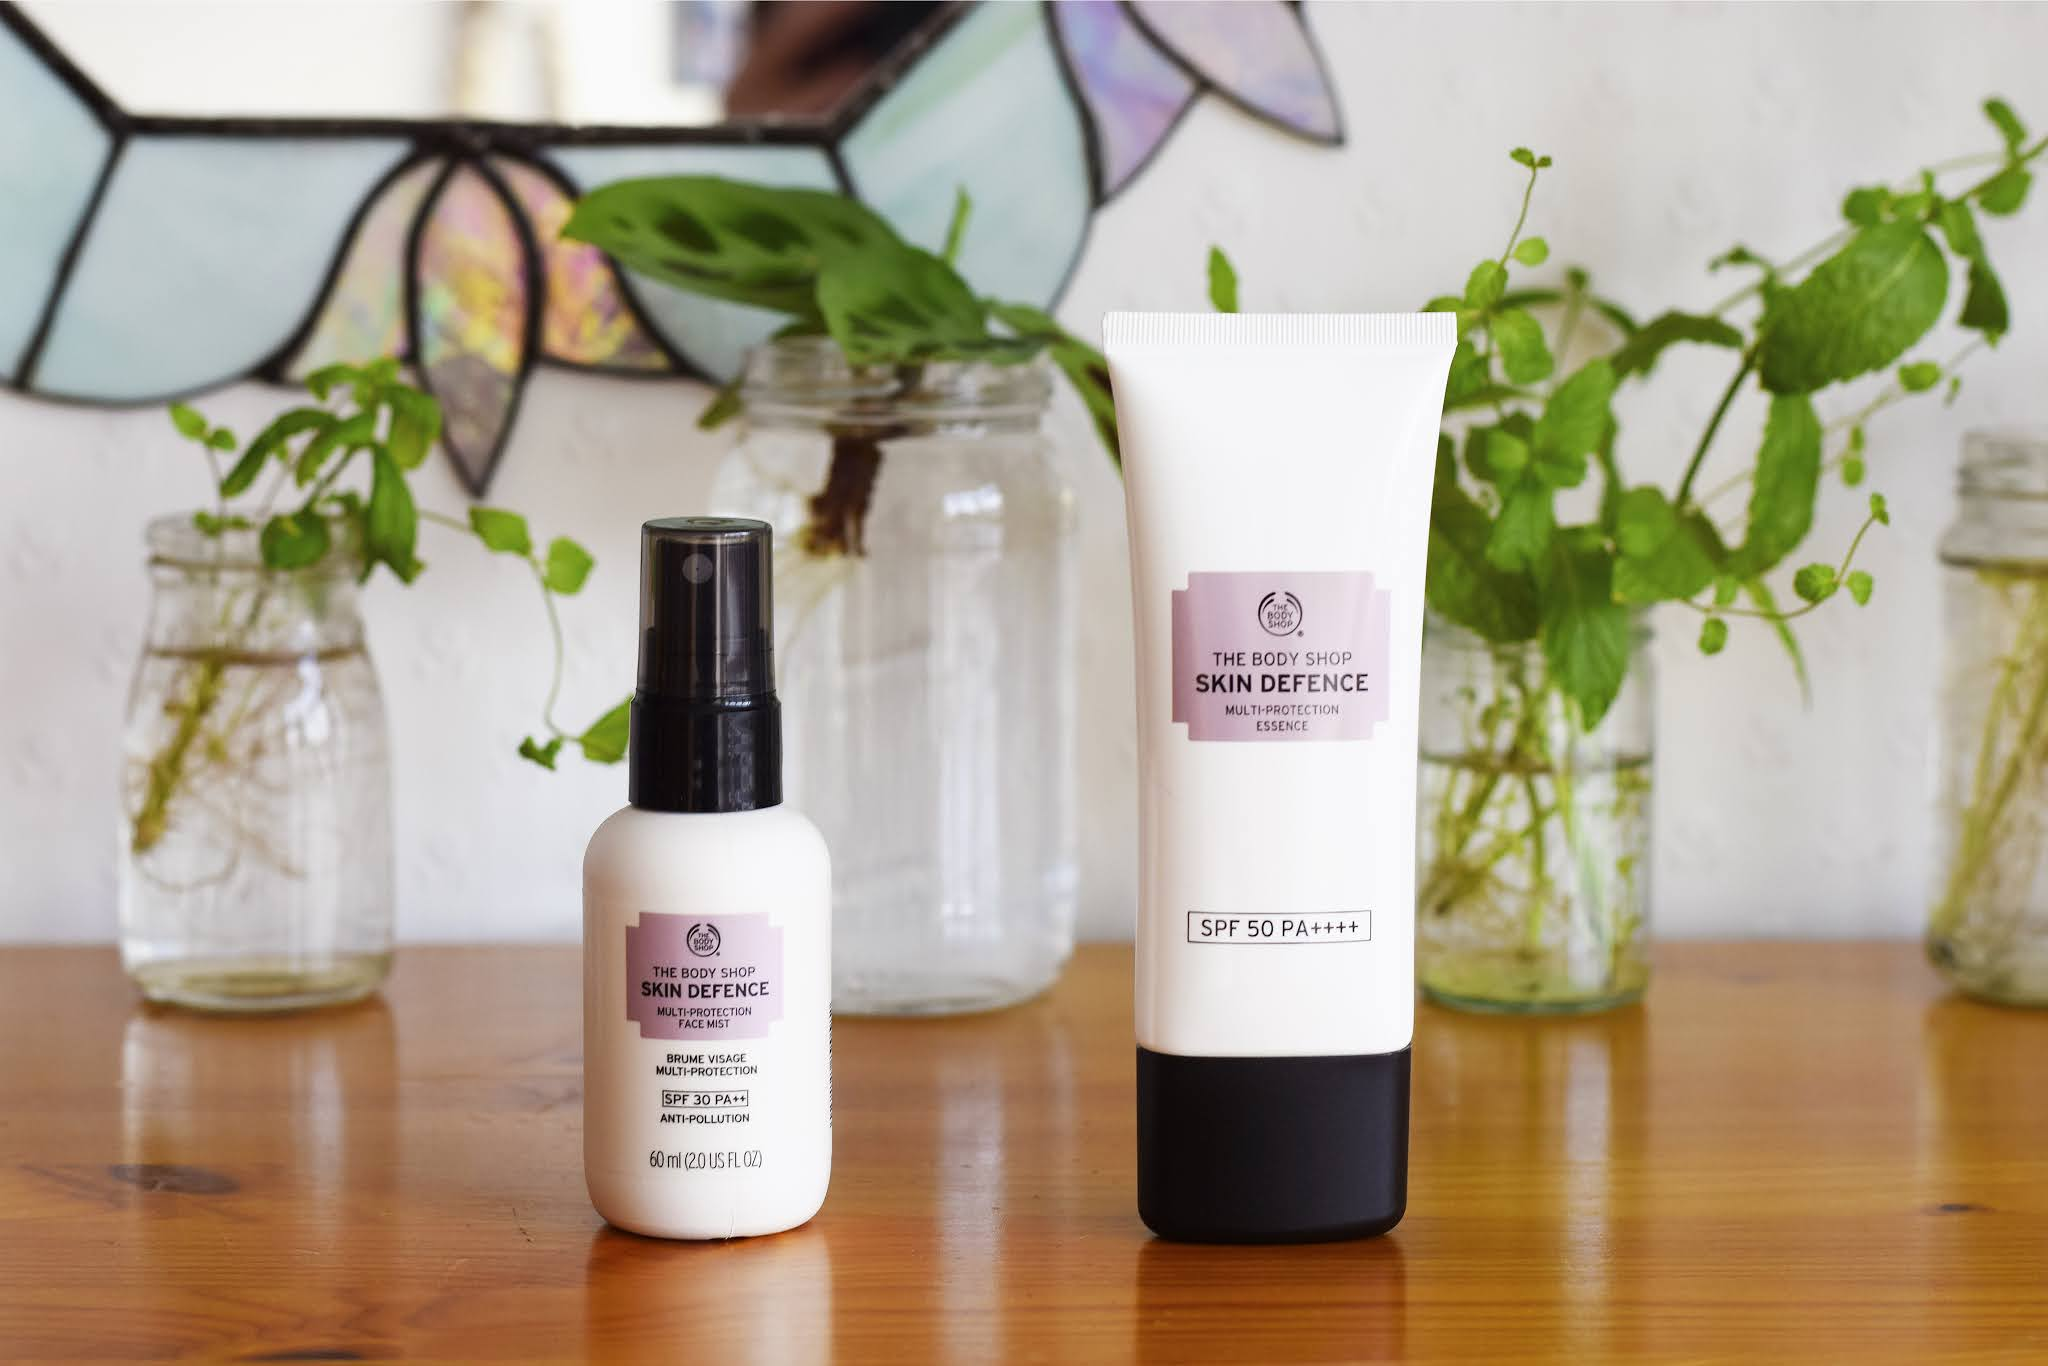 a bottle of skin defence mist and a tube of skin defence moisturiser are placed side by side.